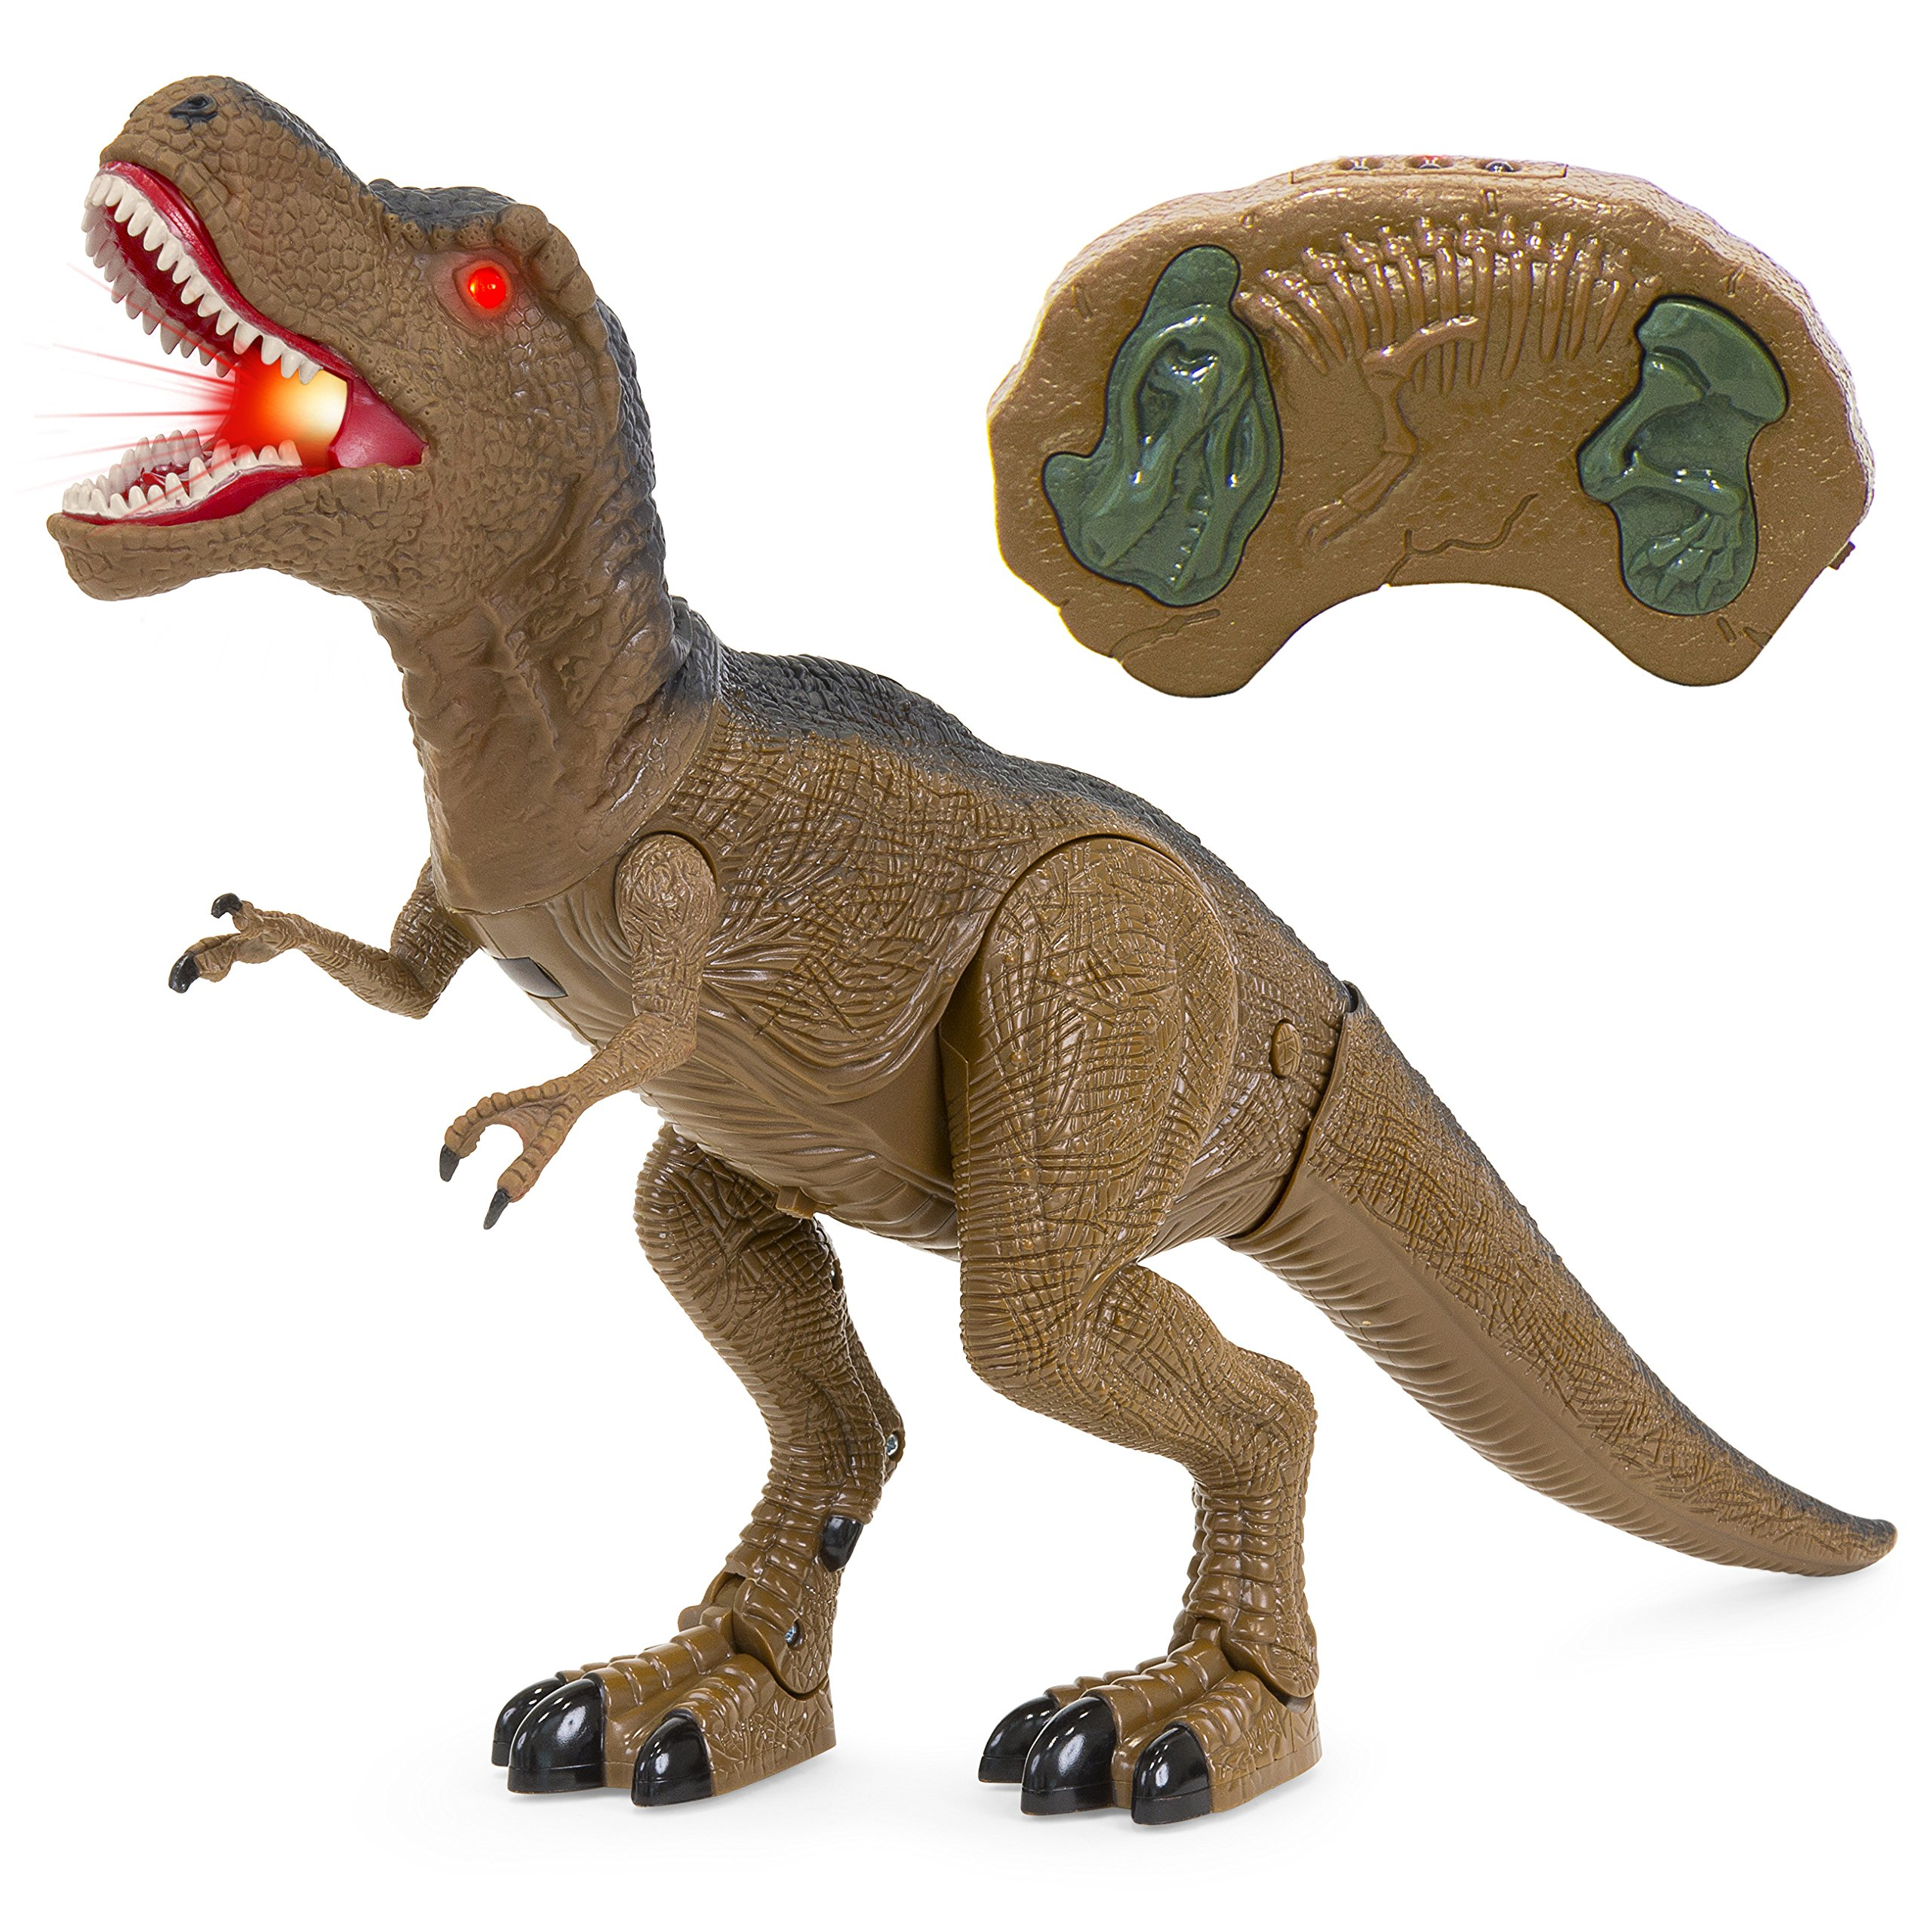 Best Choice Products Kids Remote Control T-Rex Walking Dinosaur Toy w/ Lights, Sounds - Brown